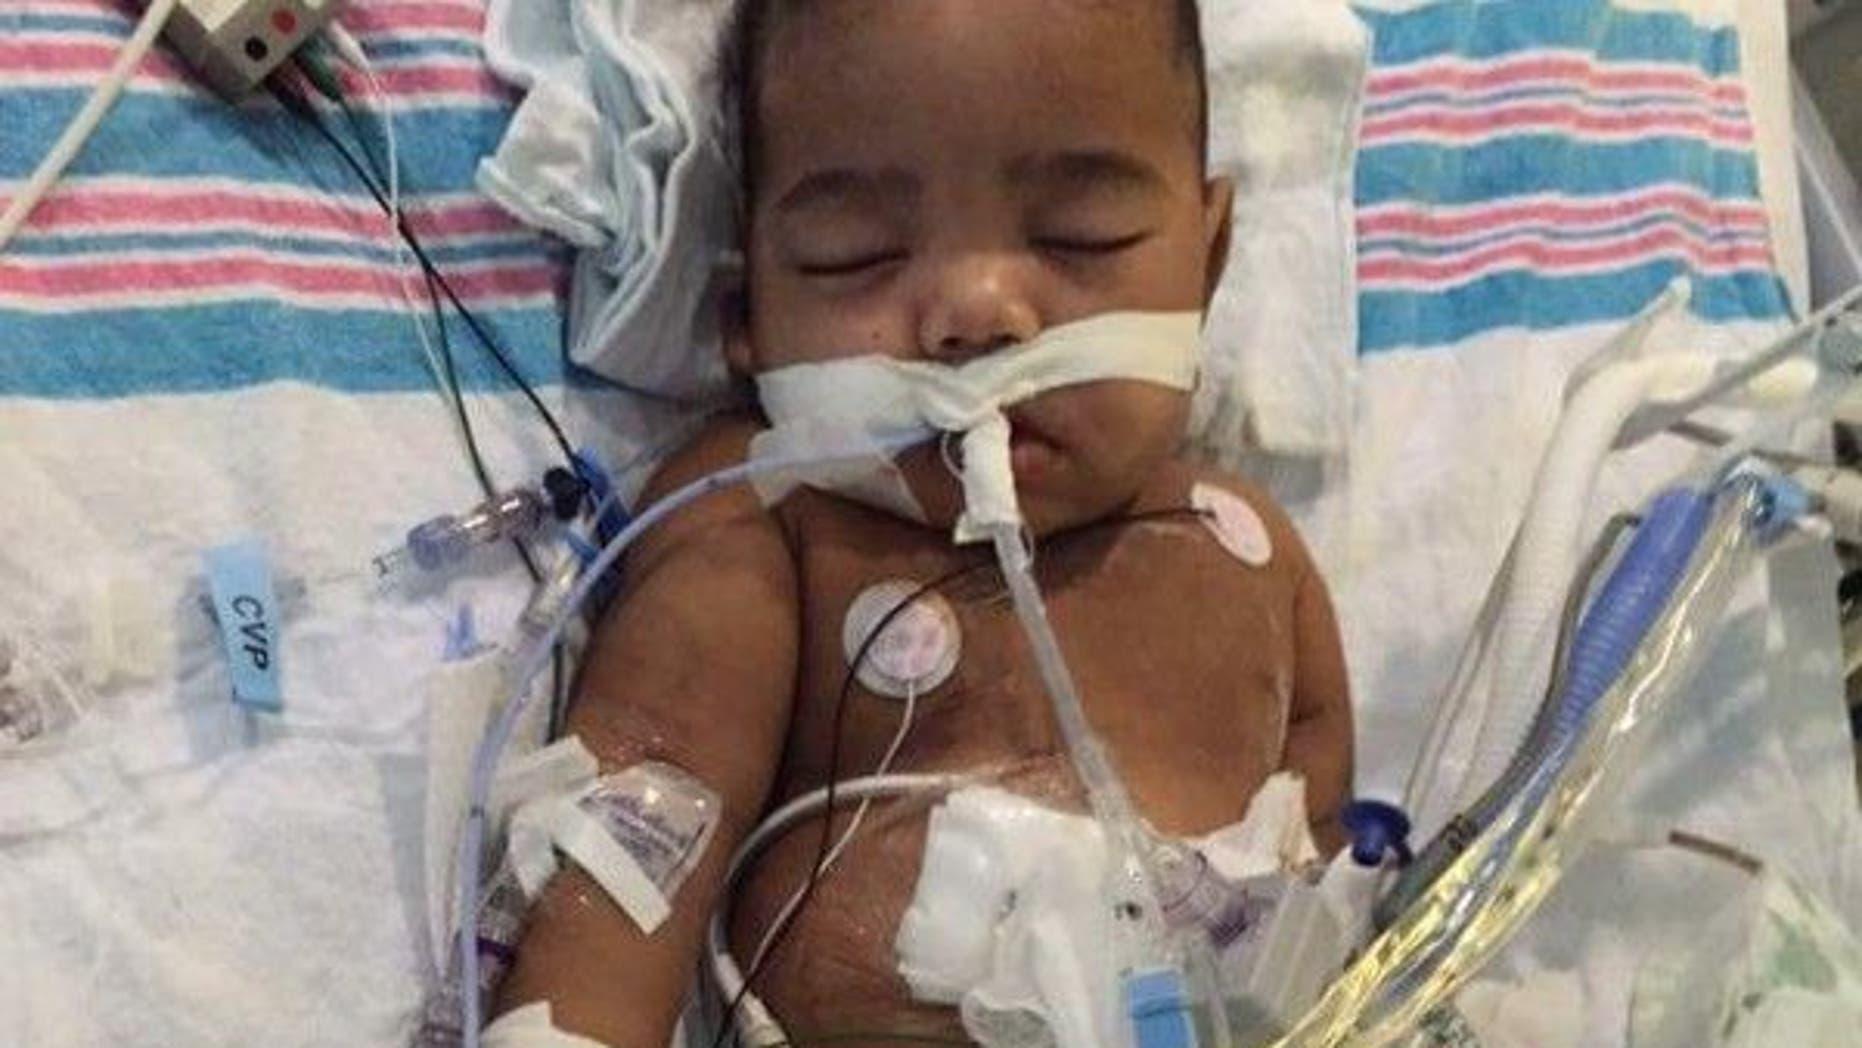 Anthony Dickerson Jr. was born without either kidney, and was set to receive his father's left organ until he violated his parole. (GoFundMe)